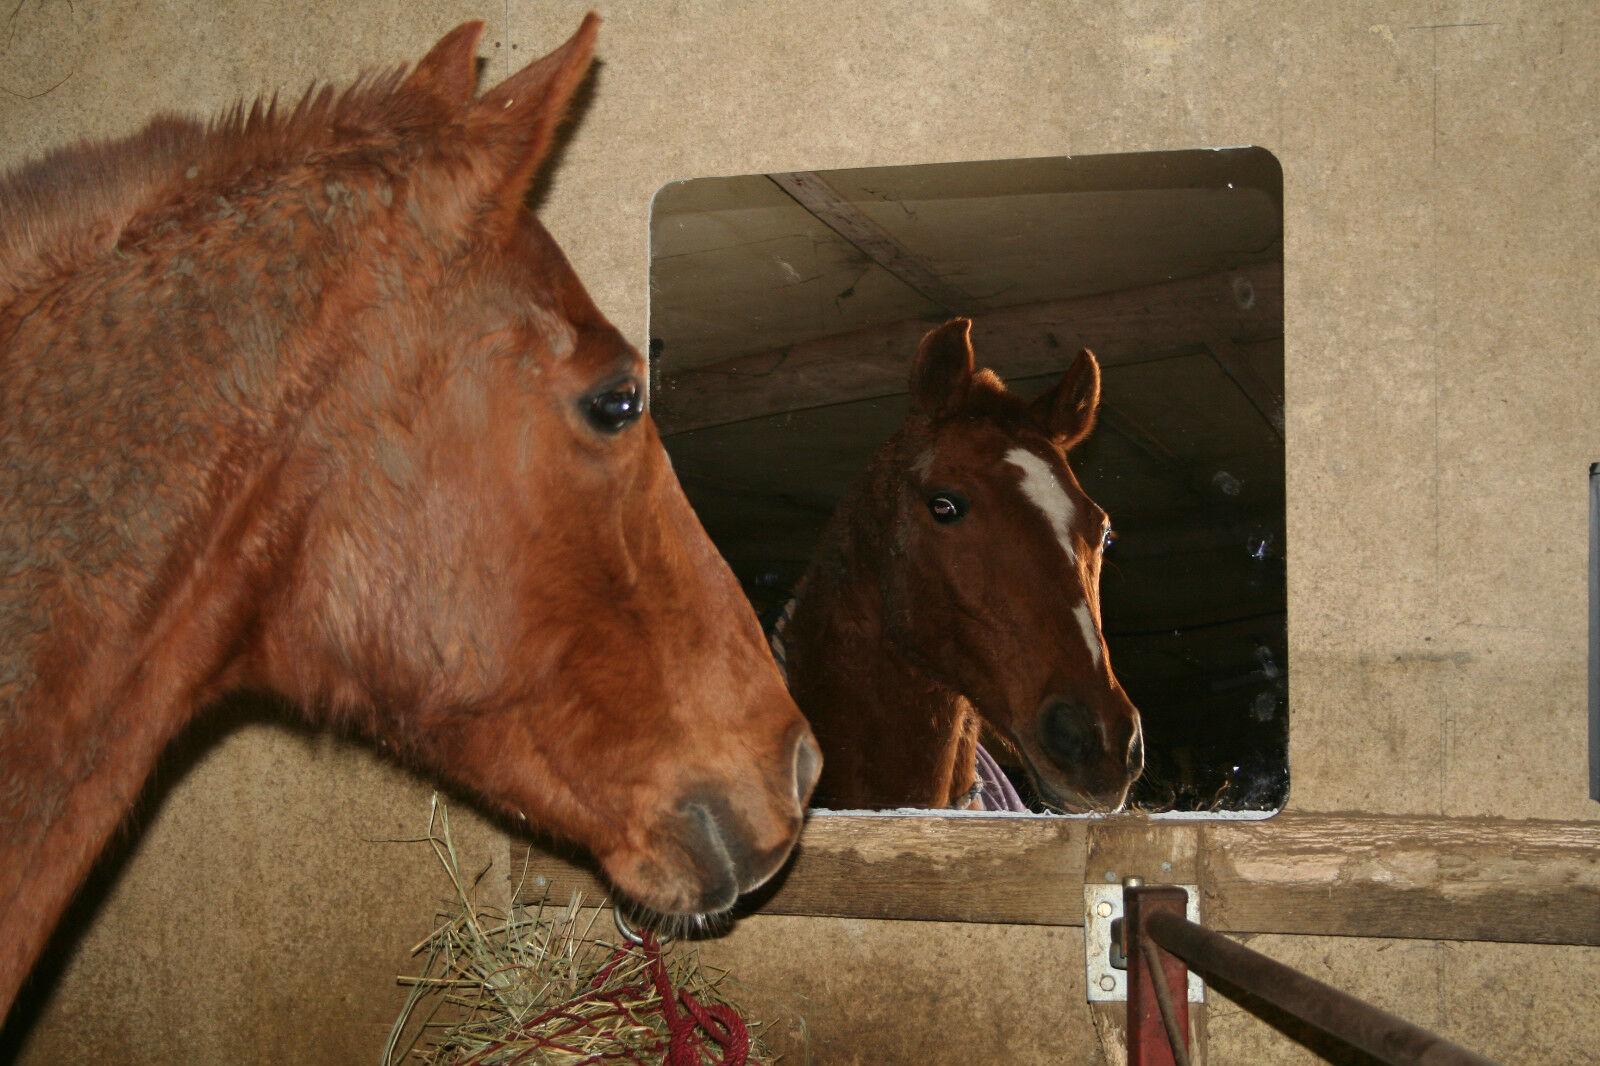 Stable Mirror 1200mm x 800mm - Acrylic - Safety - Non Shatter - Fast Delivery